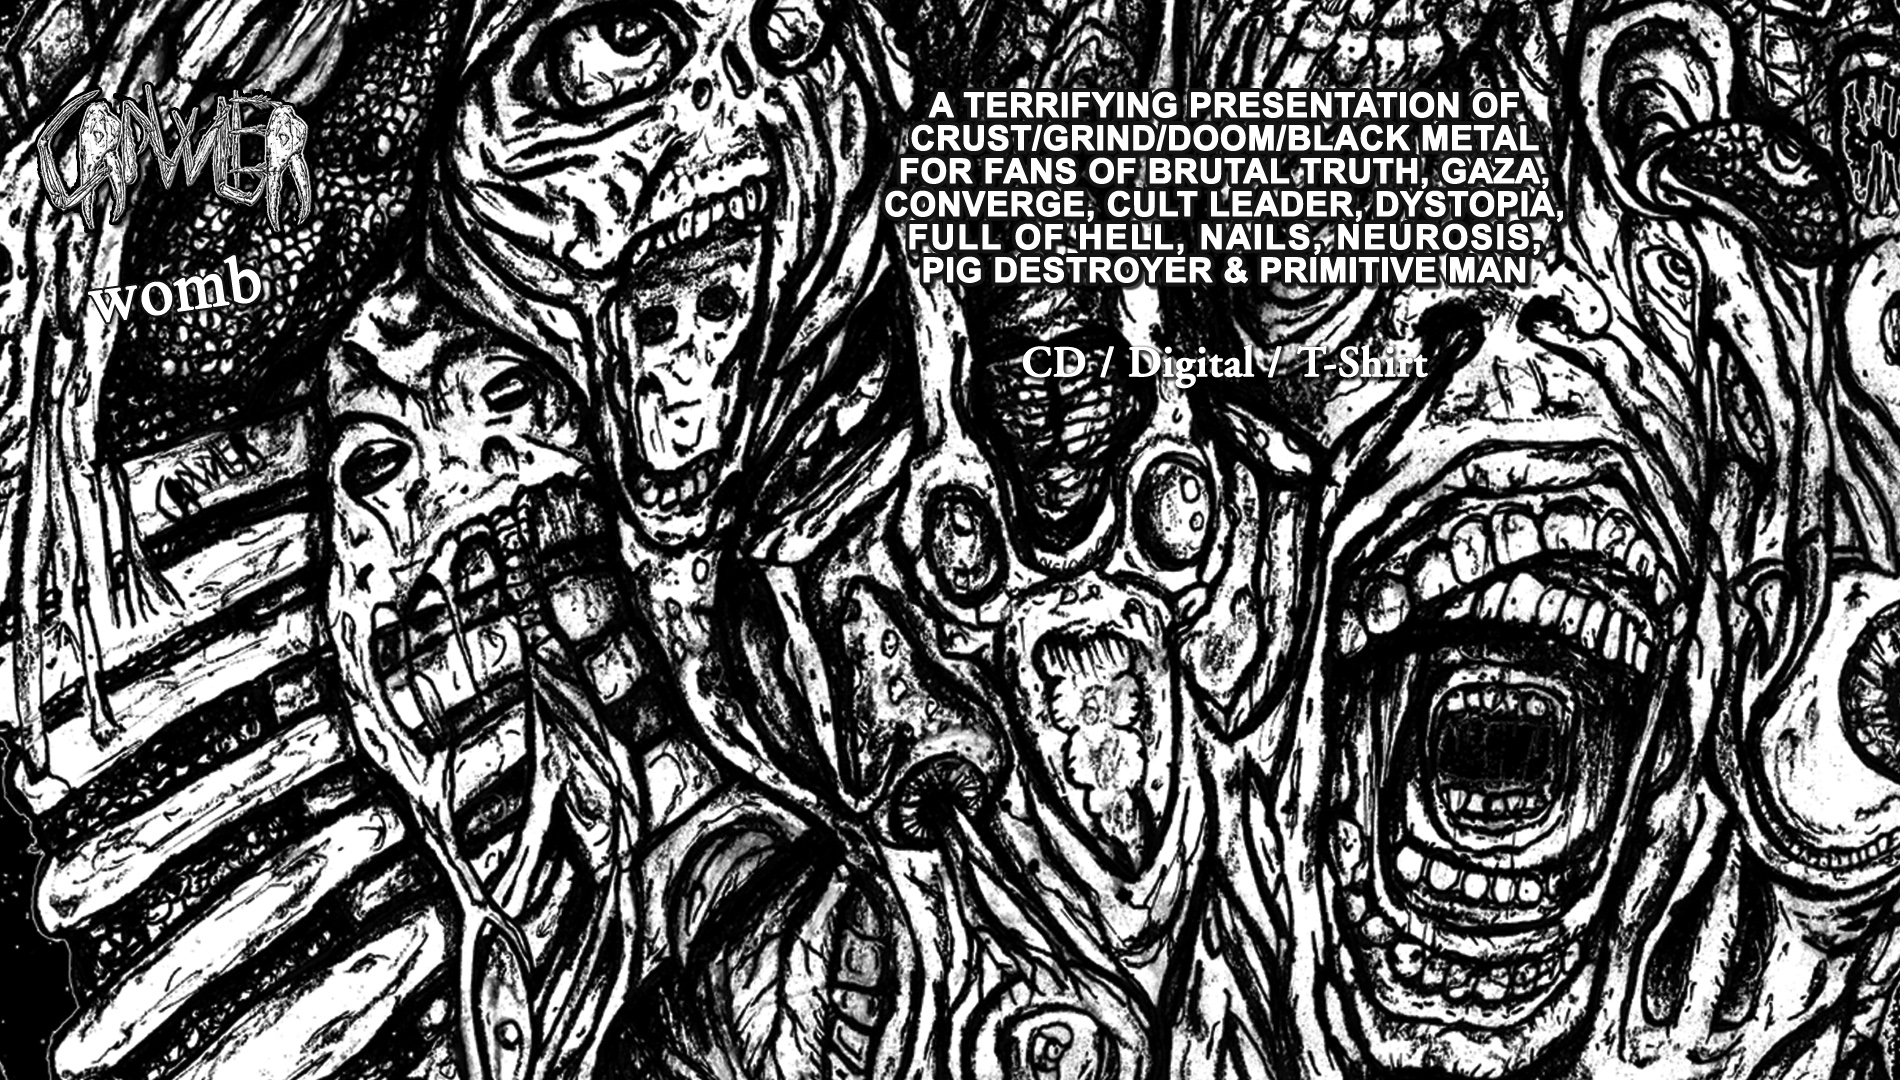 HORROR PAIN GORE DEATH PRODUCTIONS :: The Official Website Of HPGD